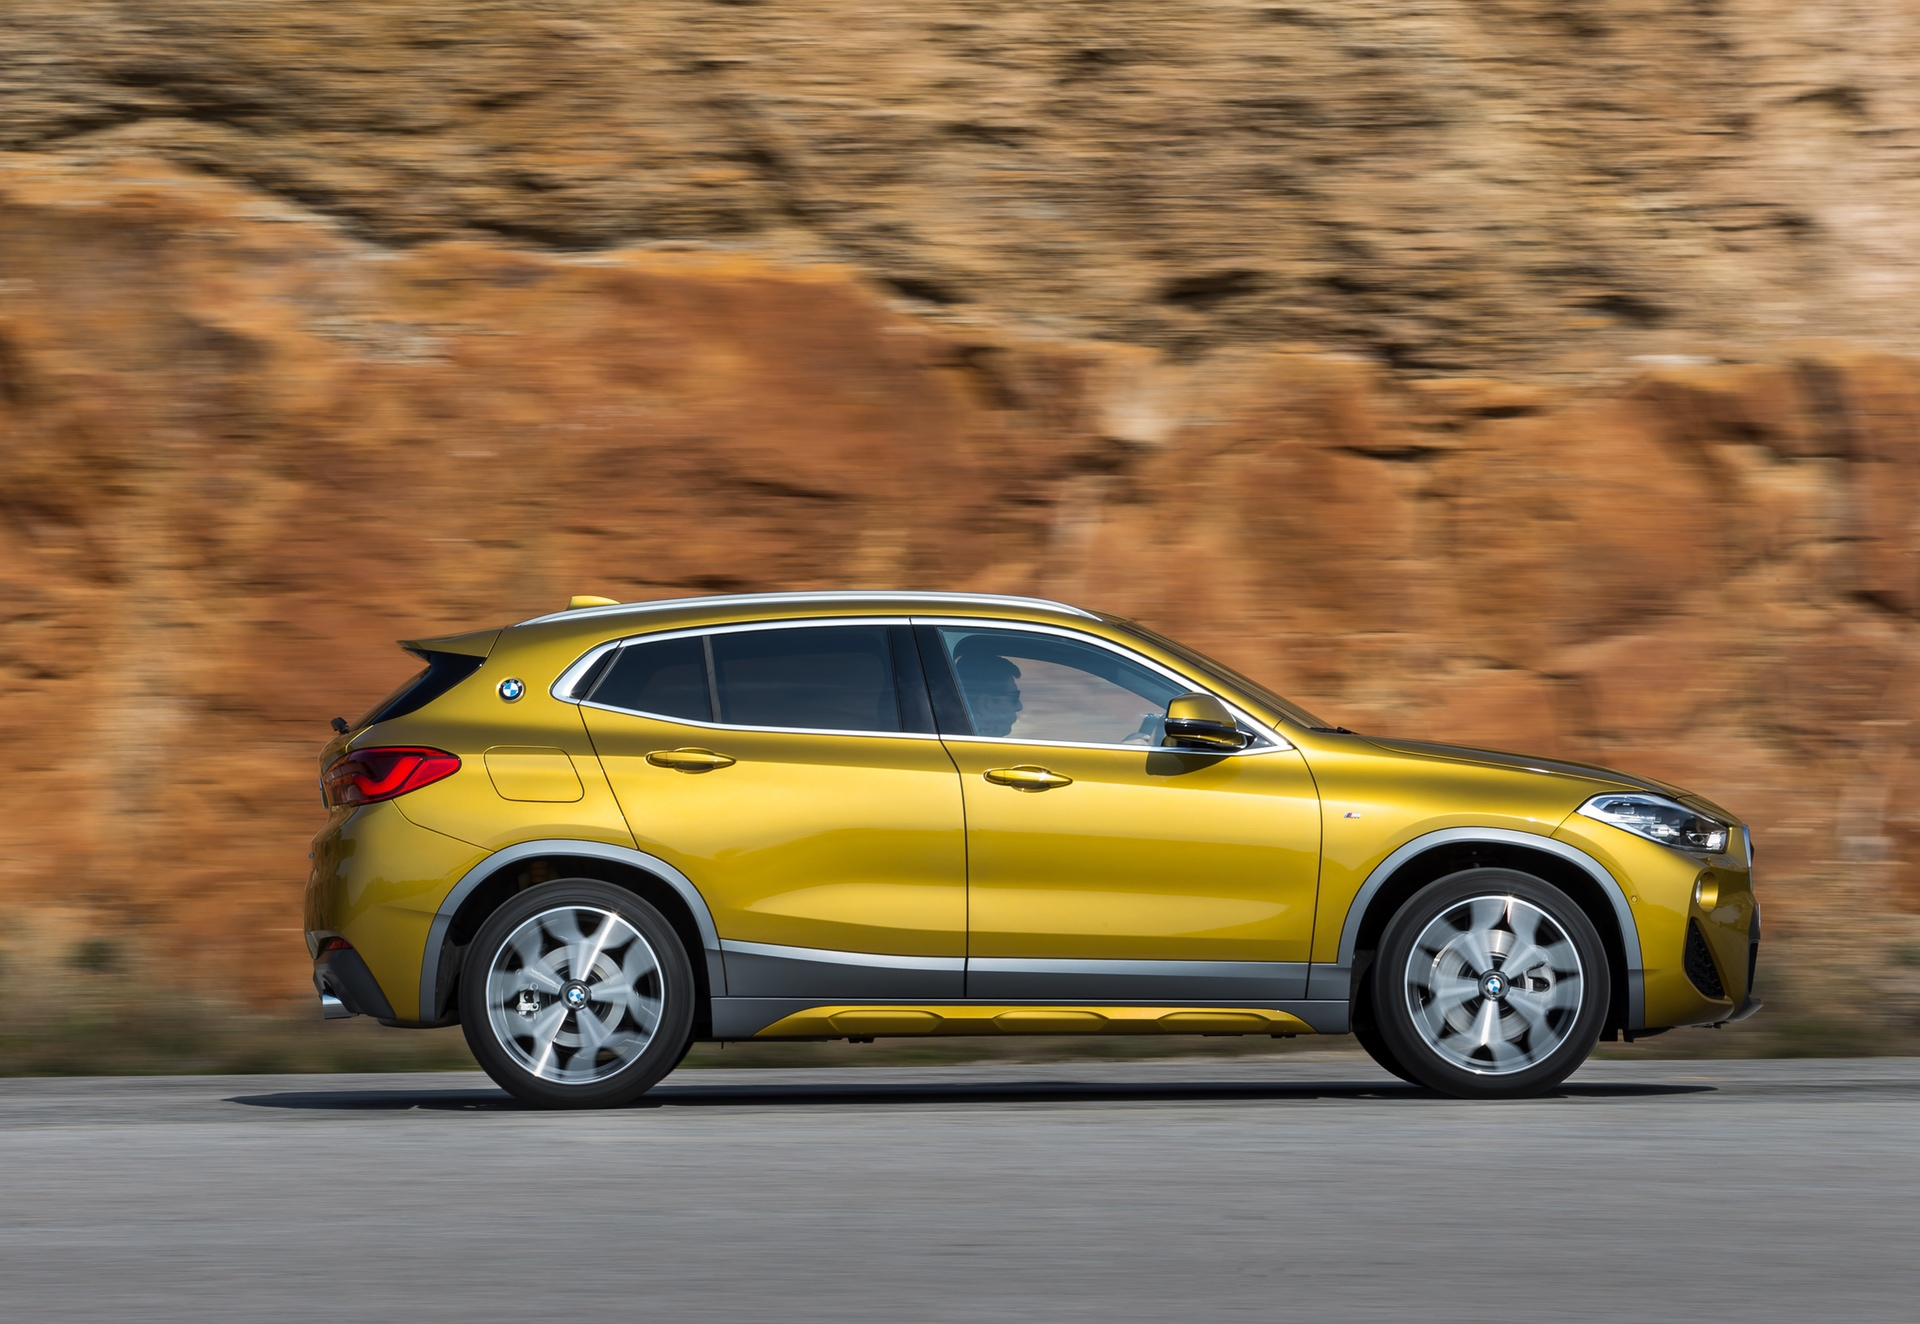 BMW_X2_Greek_presskit_0116